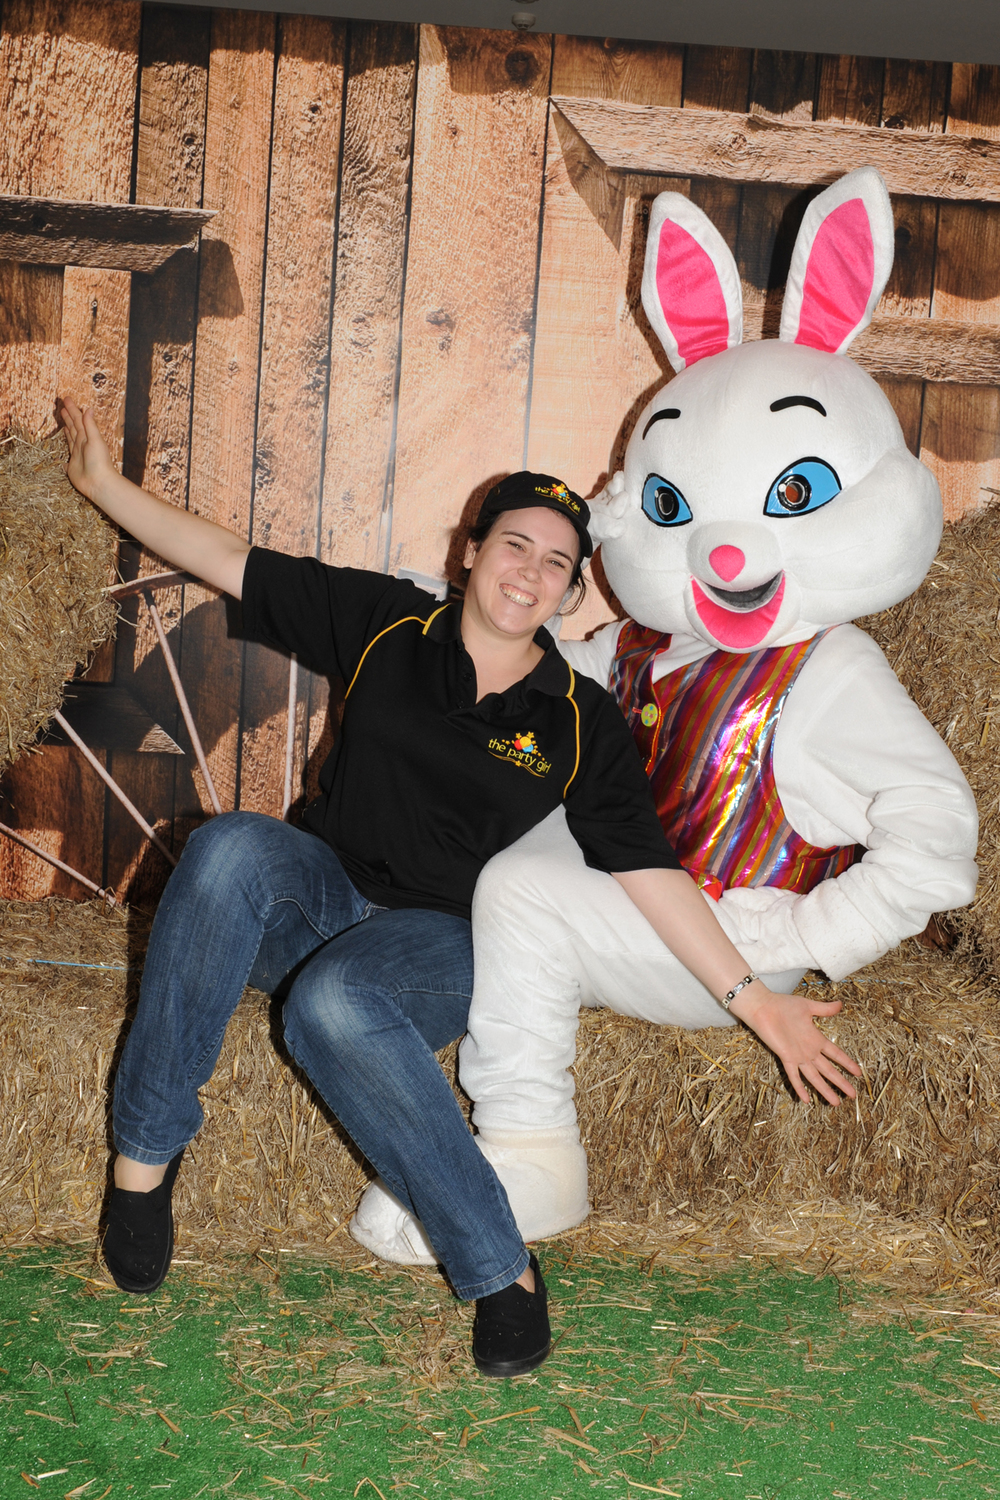 Easter-events-character-bunny-the-party-girl.jpg